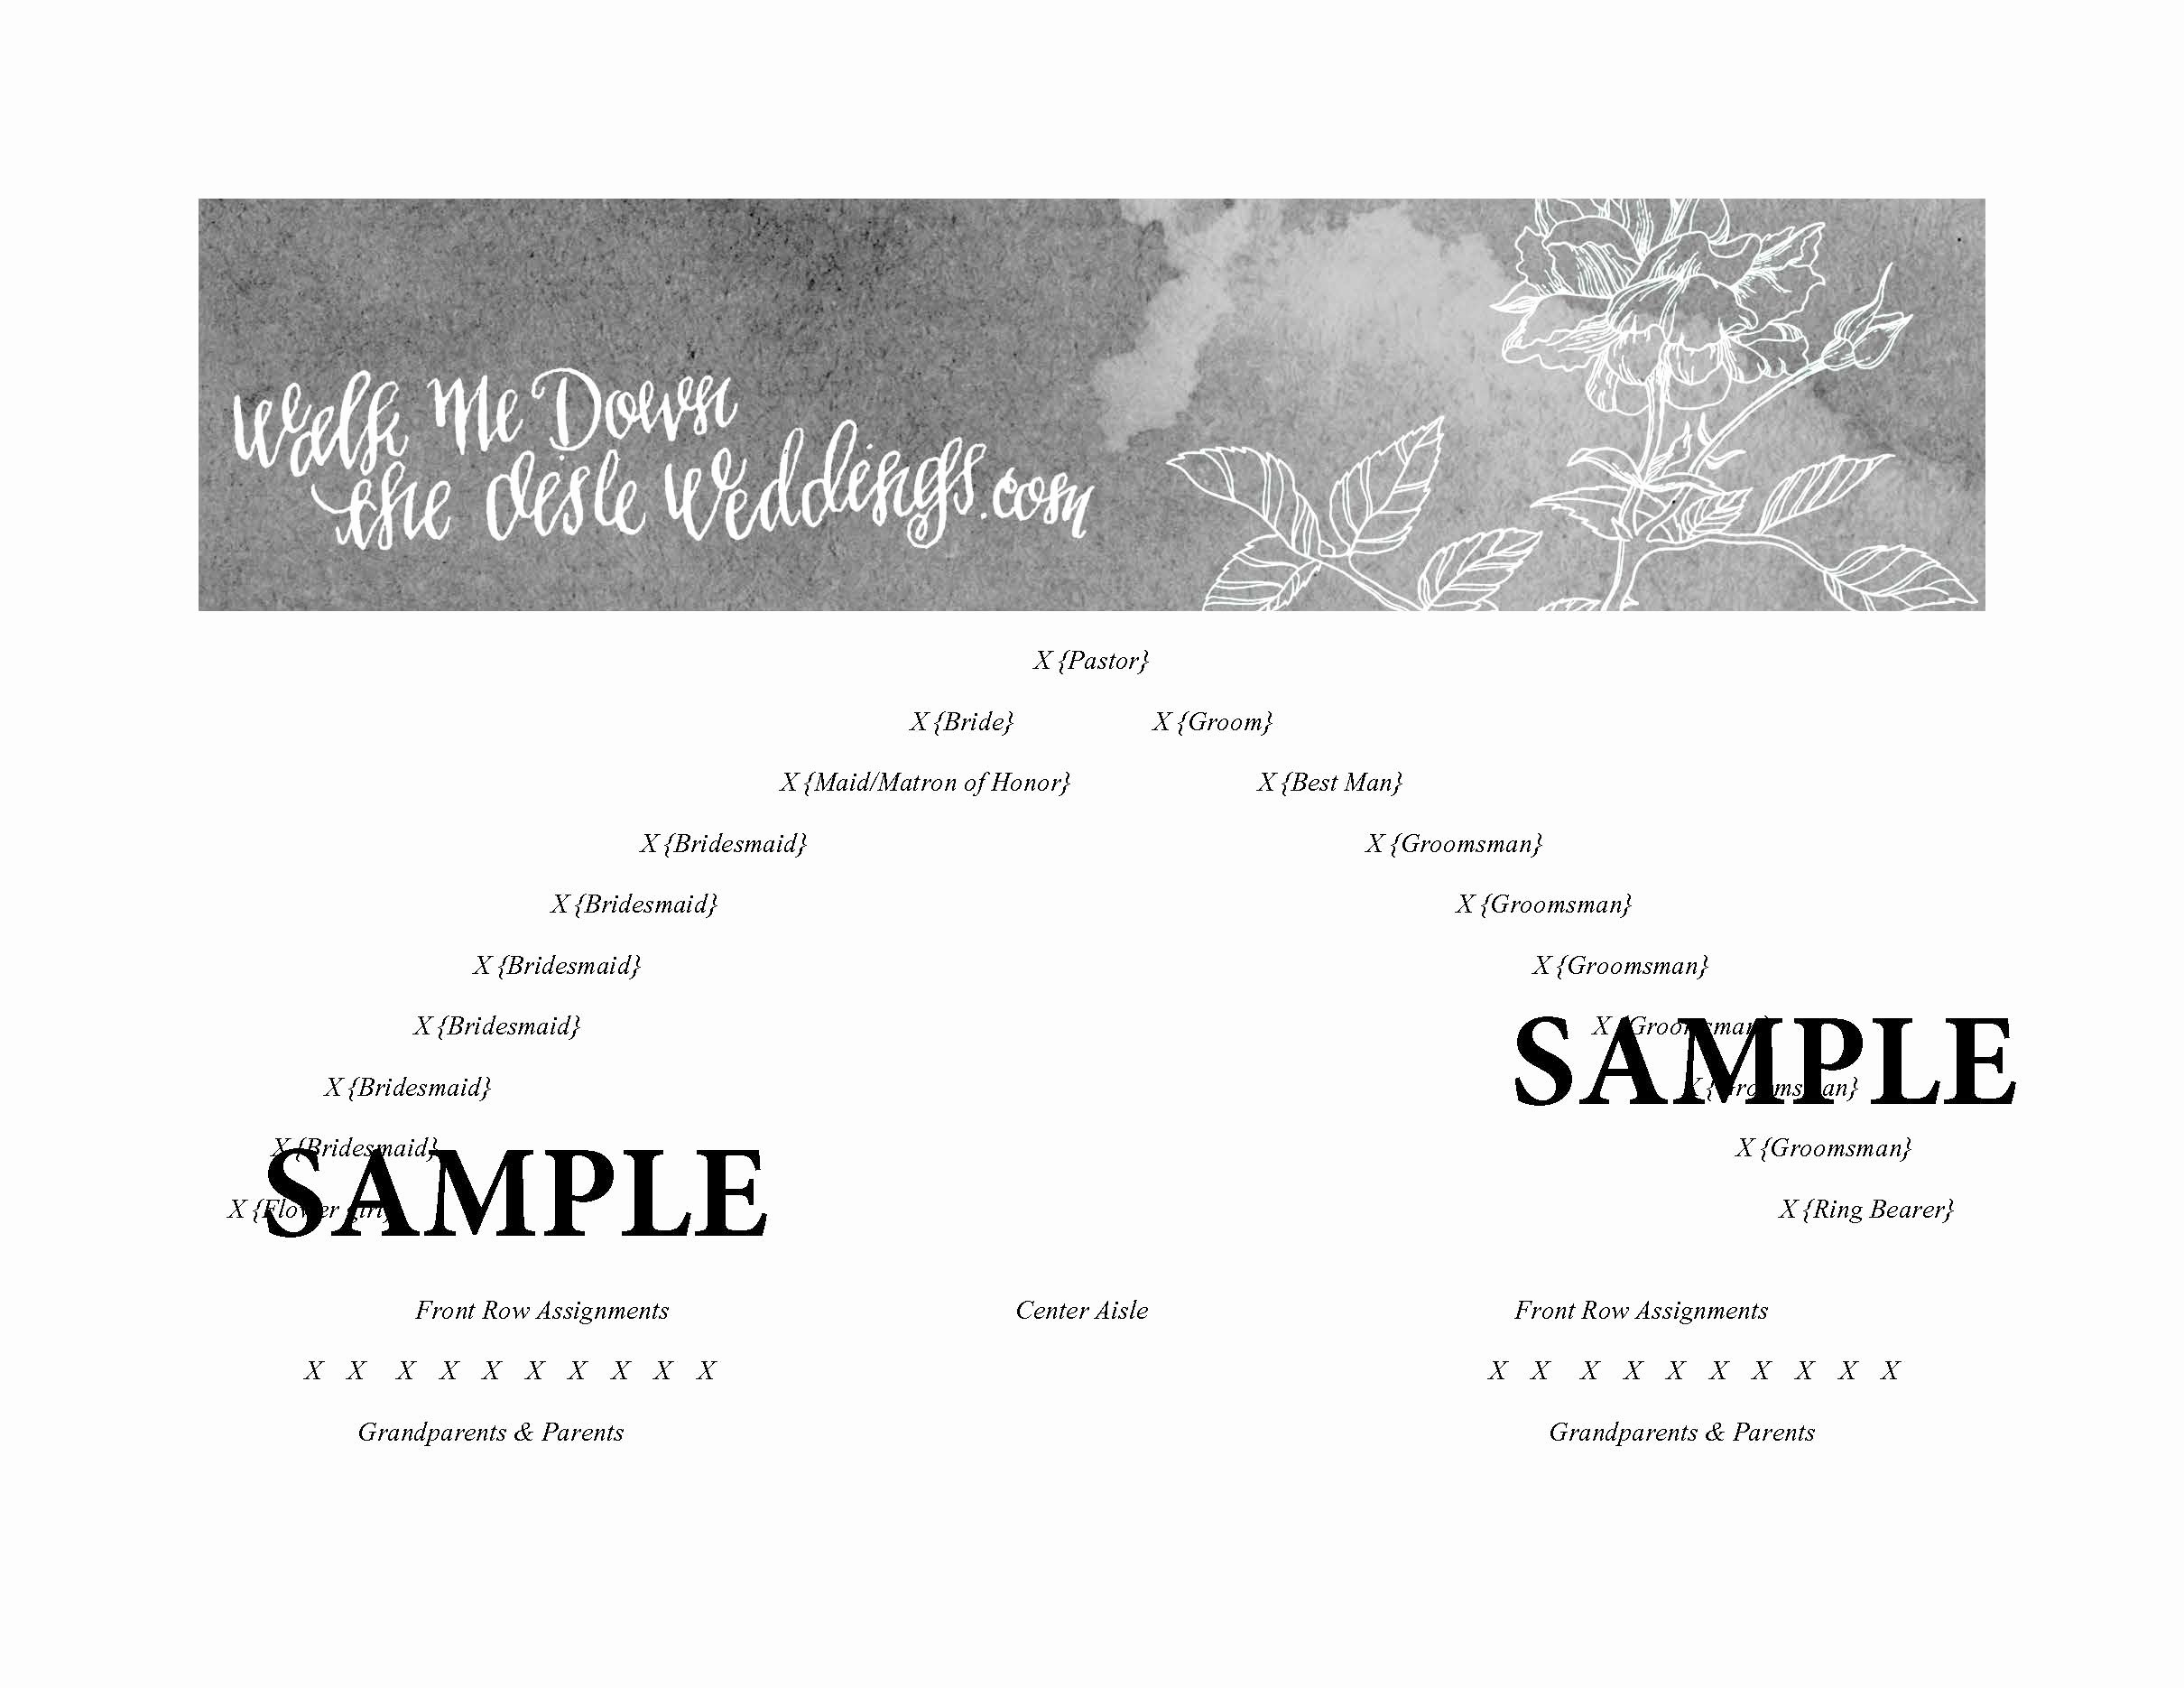 Church Seating Chart Template Awesome Church Wedding Seating Plan Template